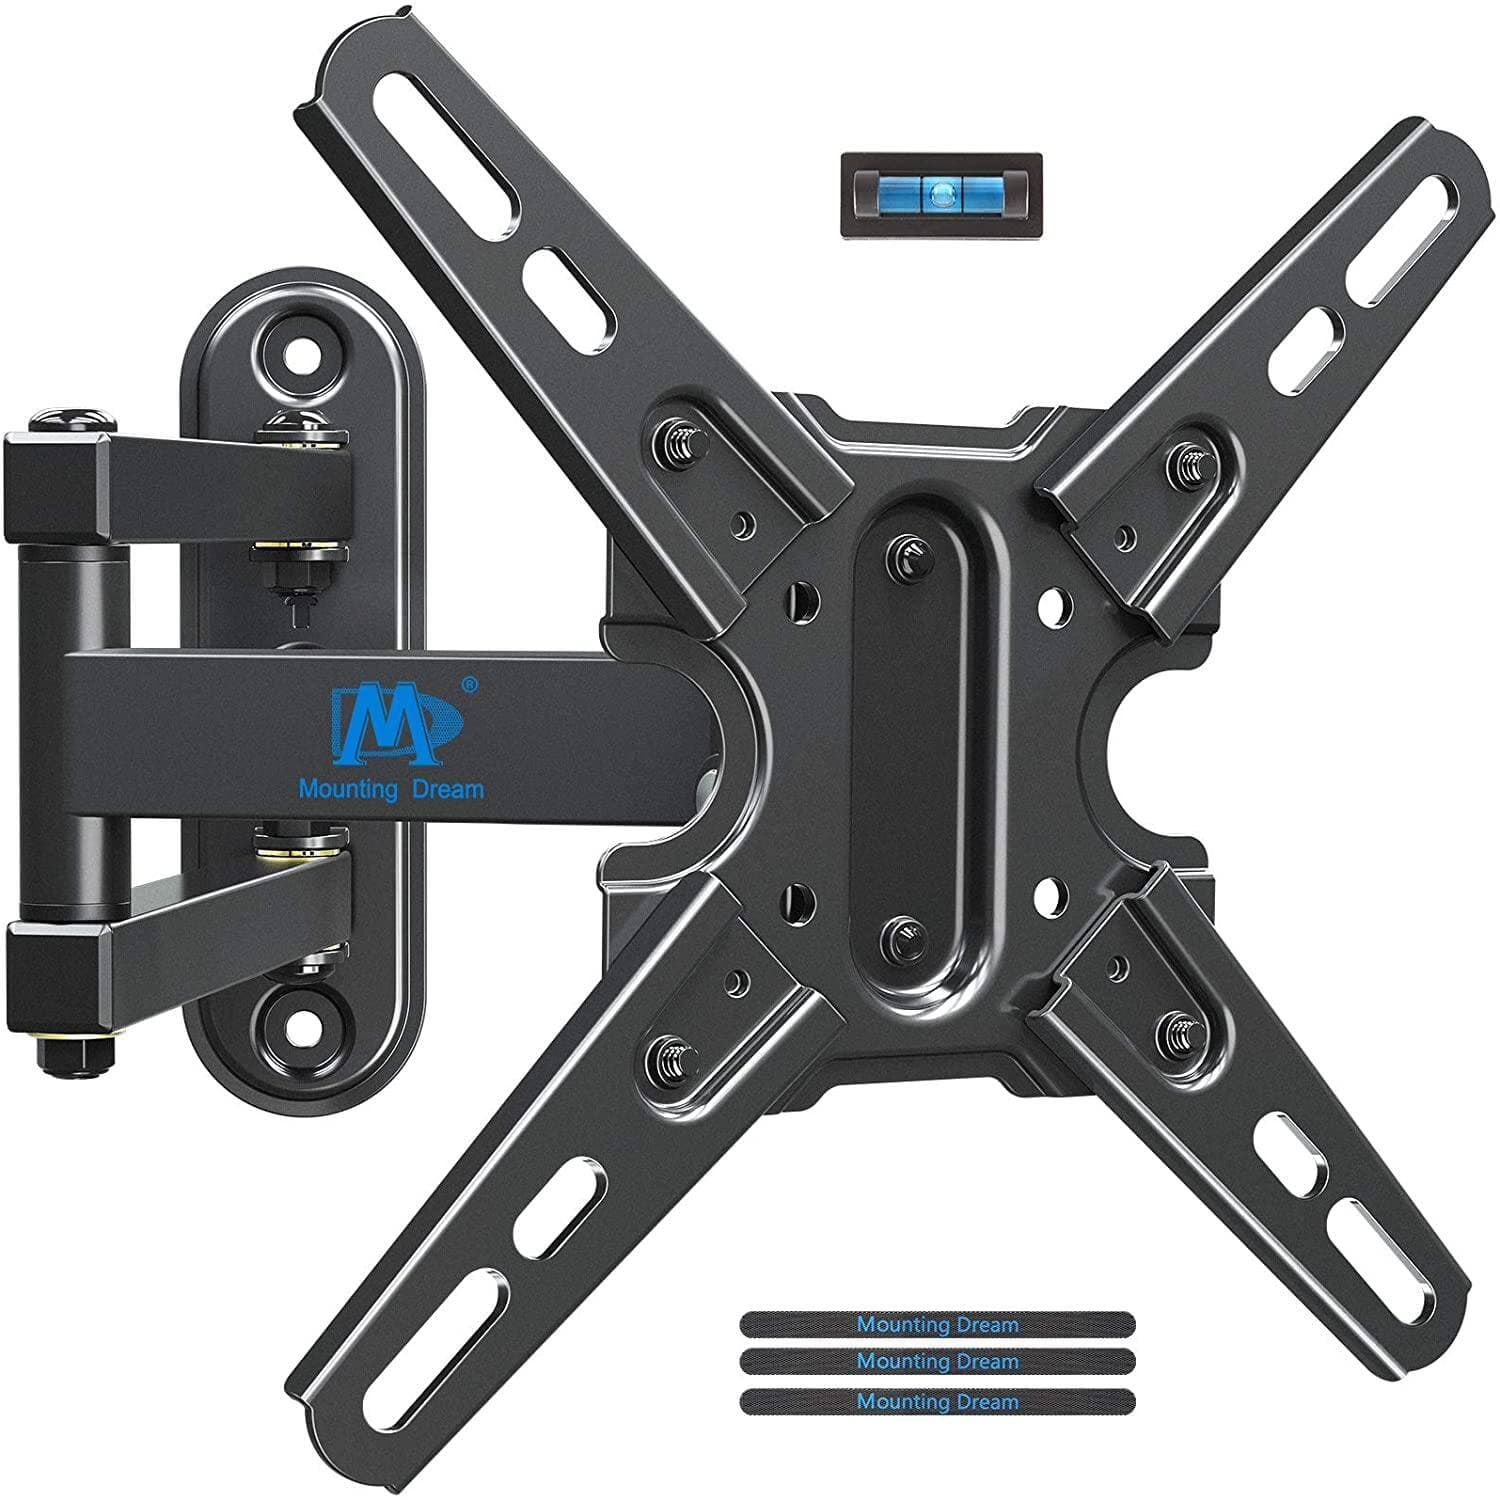 Mounting Dream TV Wall Mount for Most 13-43 Inch TVs and Monitors for $11.99 with clipped coupon + Free shipping with Prime or orders $25+